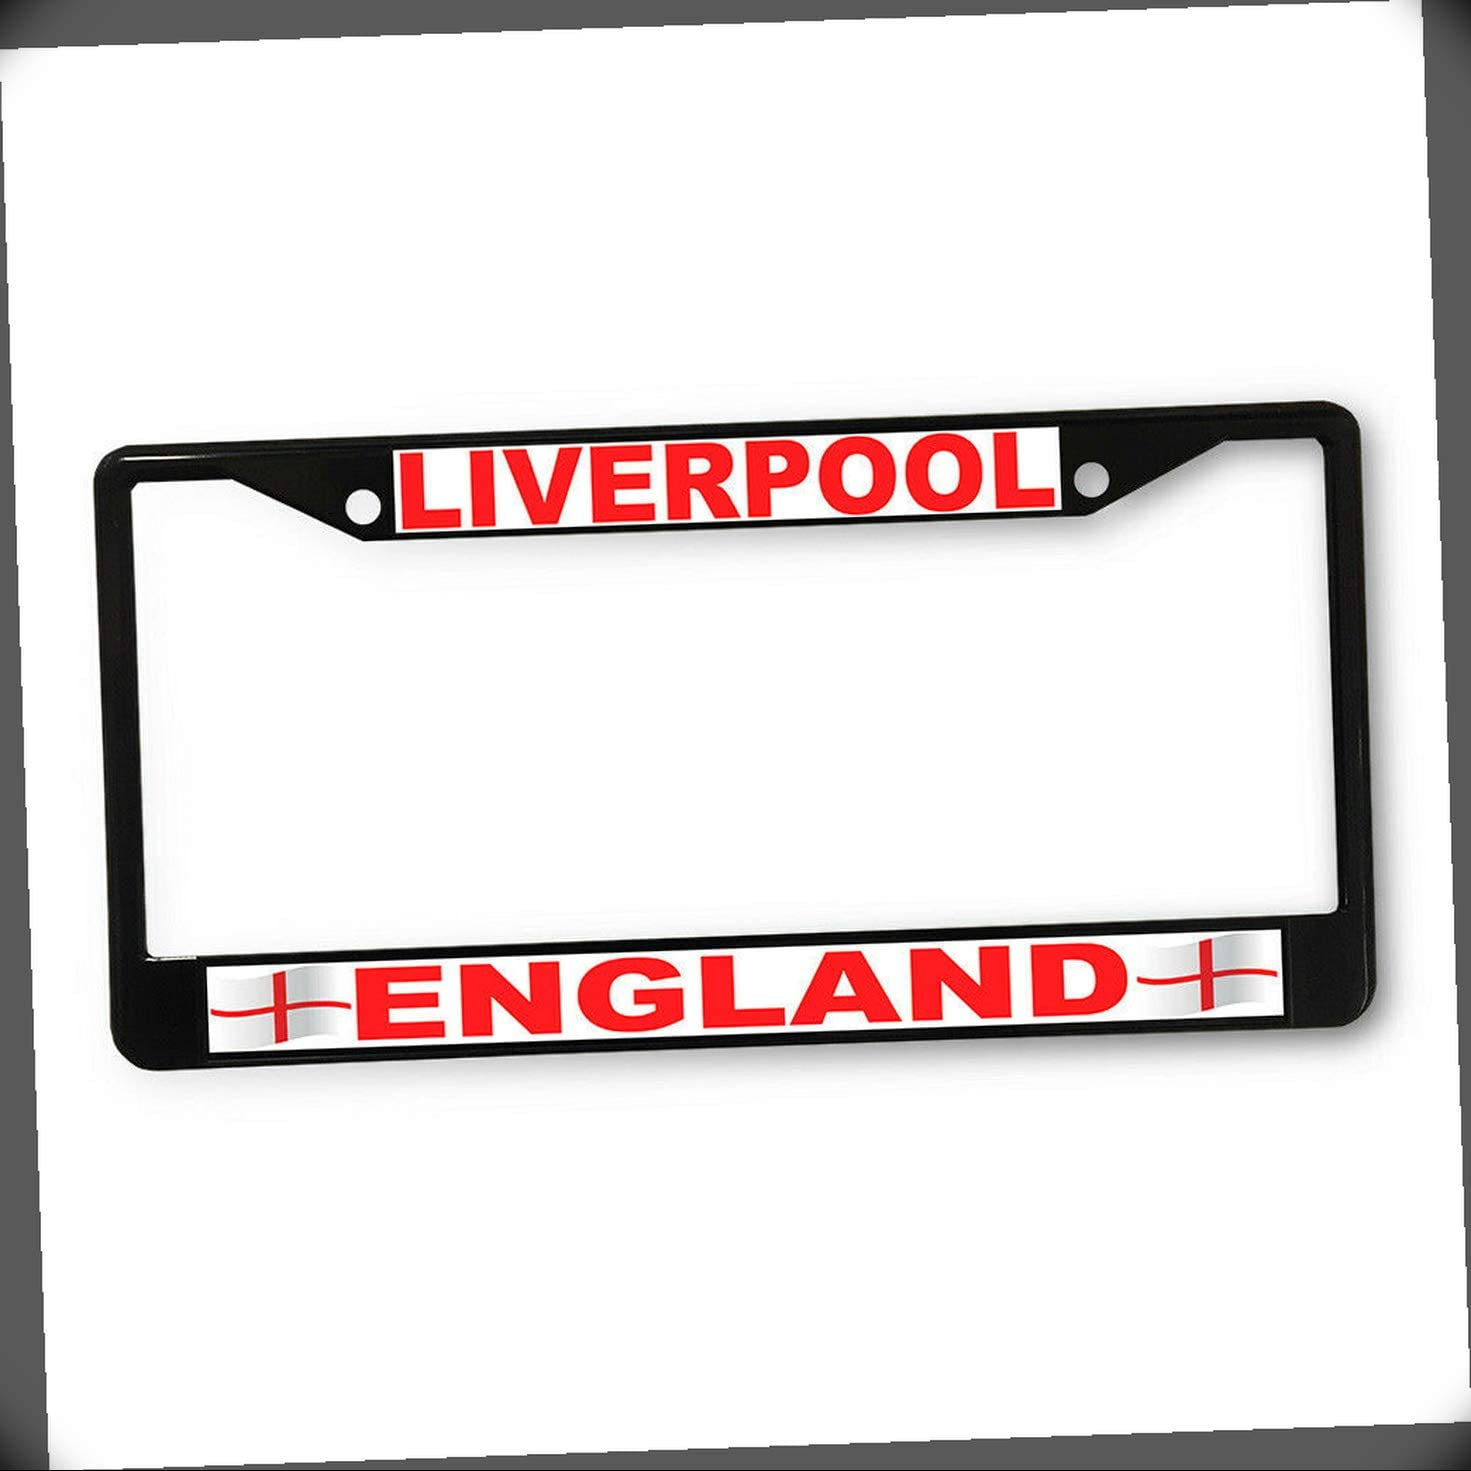 New License Plate Department store Frame Liverpool Travel Cheap sale Places England E Flag